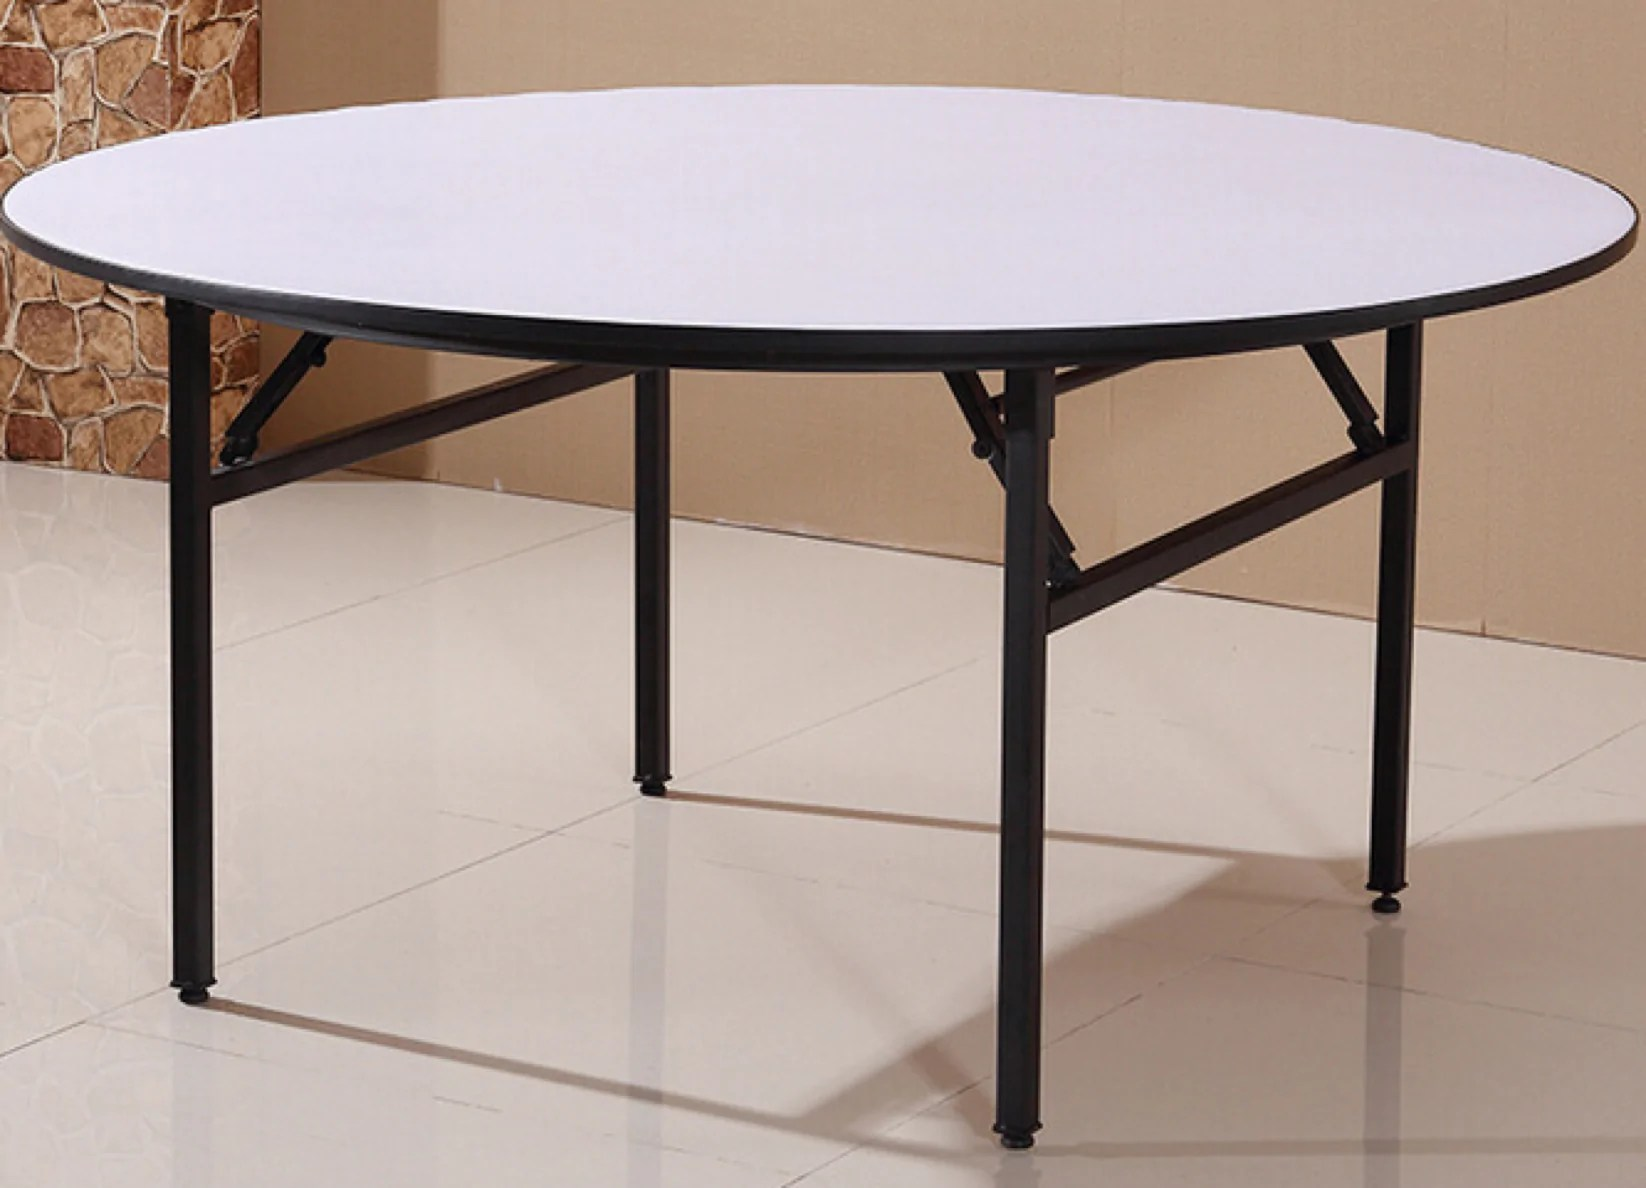 5 Foot Dining Table With Elegant White Leather Cushioned Top - Royal Luxury Events & Rentals